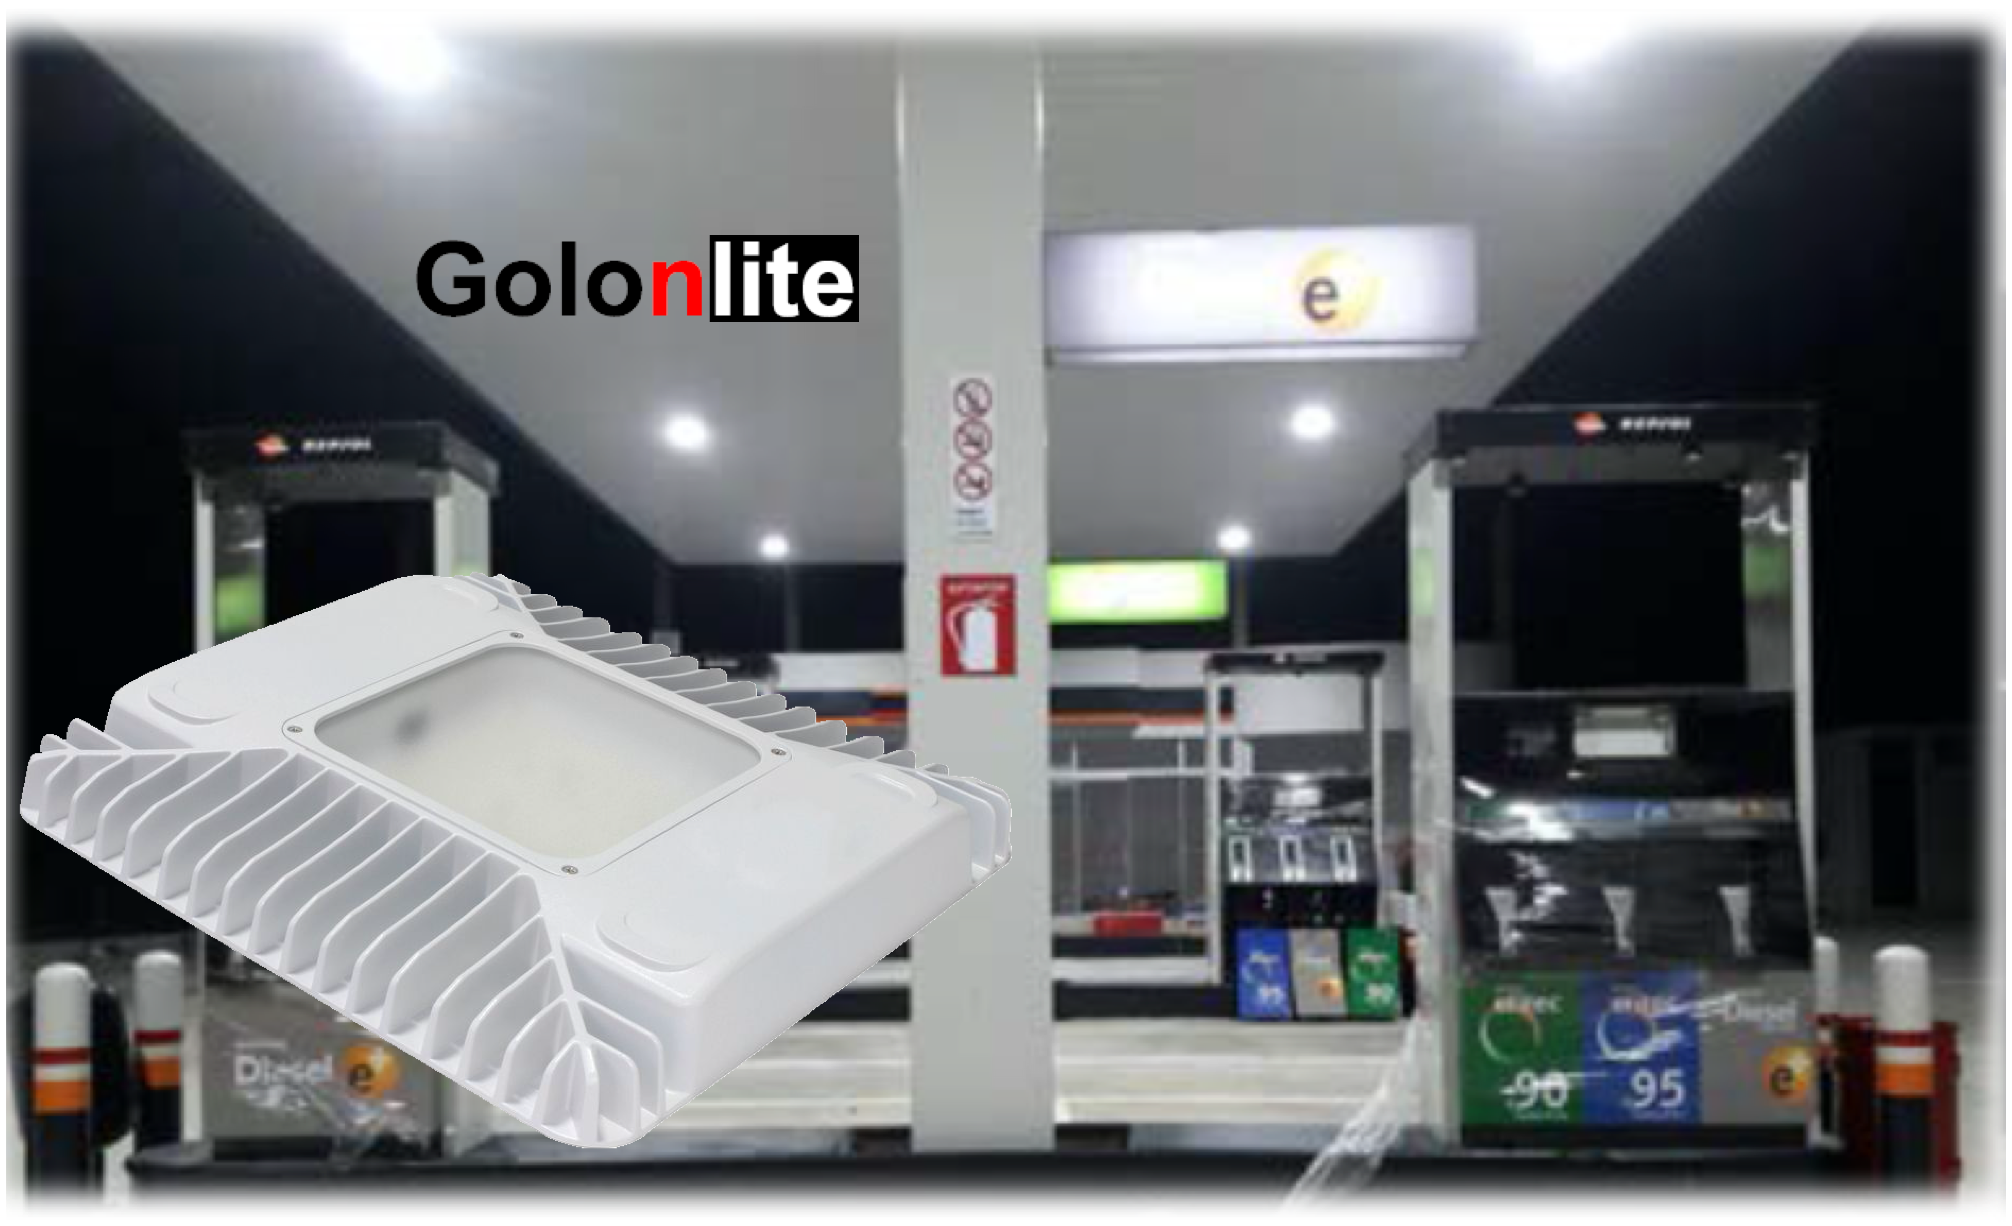 Led Canopy Light For Gas Station 150w 120w 100w To Repalce 400w 500w Hps Halogen Lamp 100 277vac Sensor Call Me Now Oli Canopy Lights Lamp Contemporary Lamps